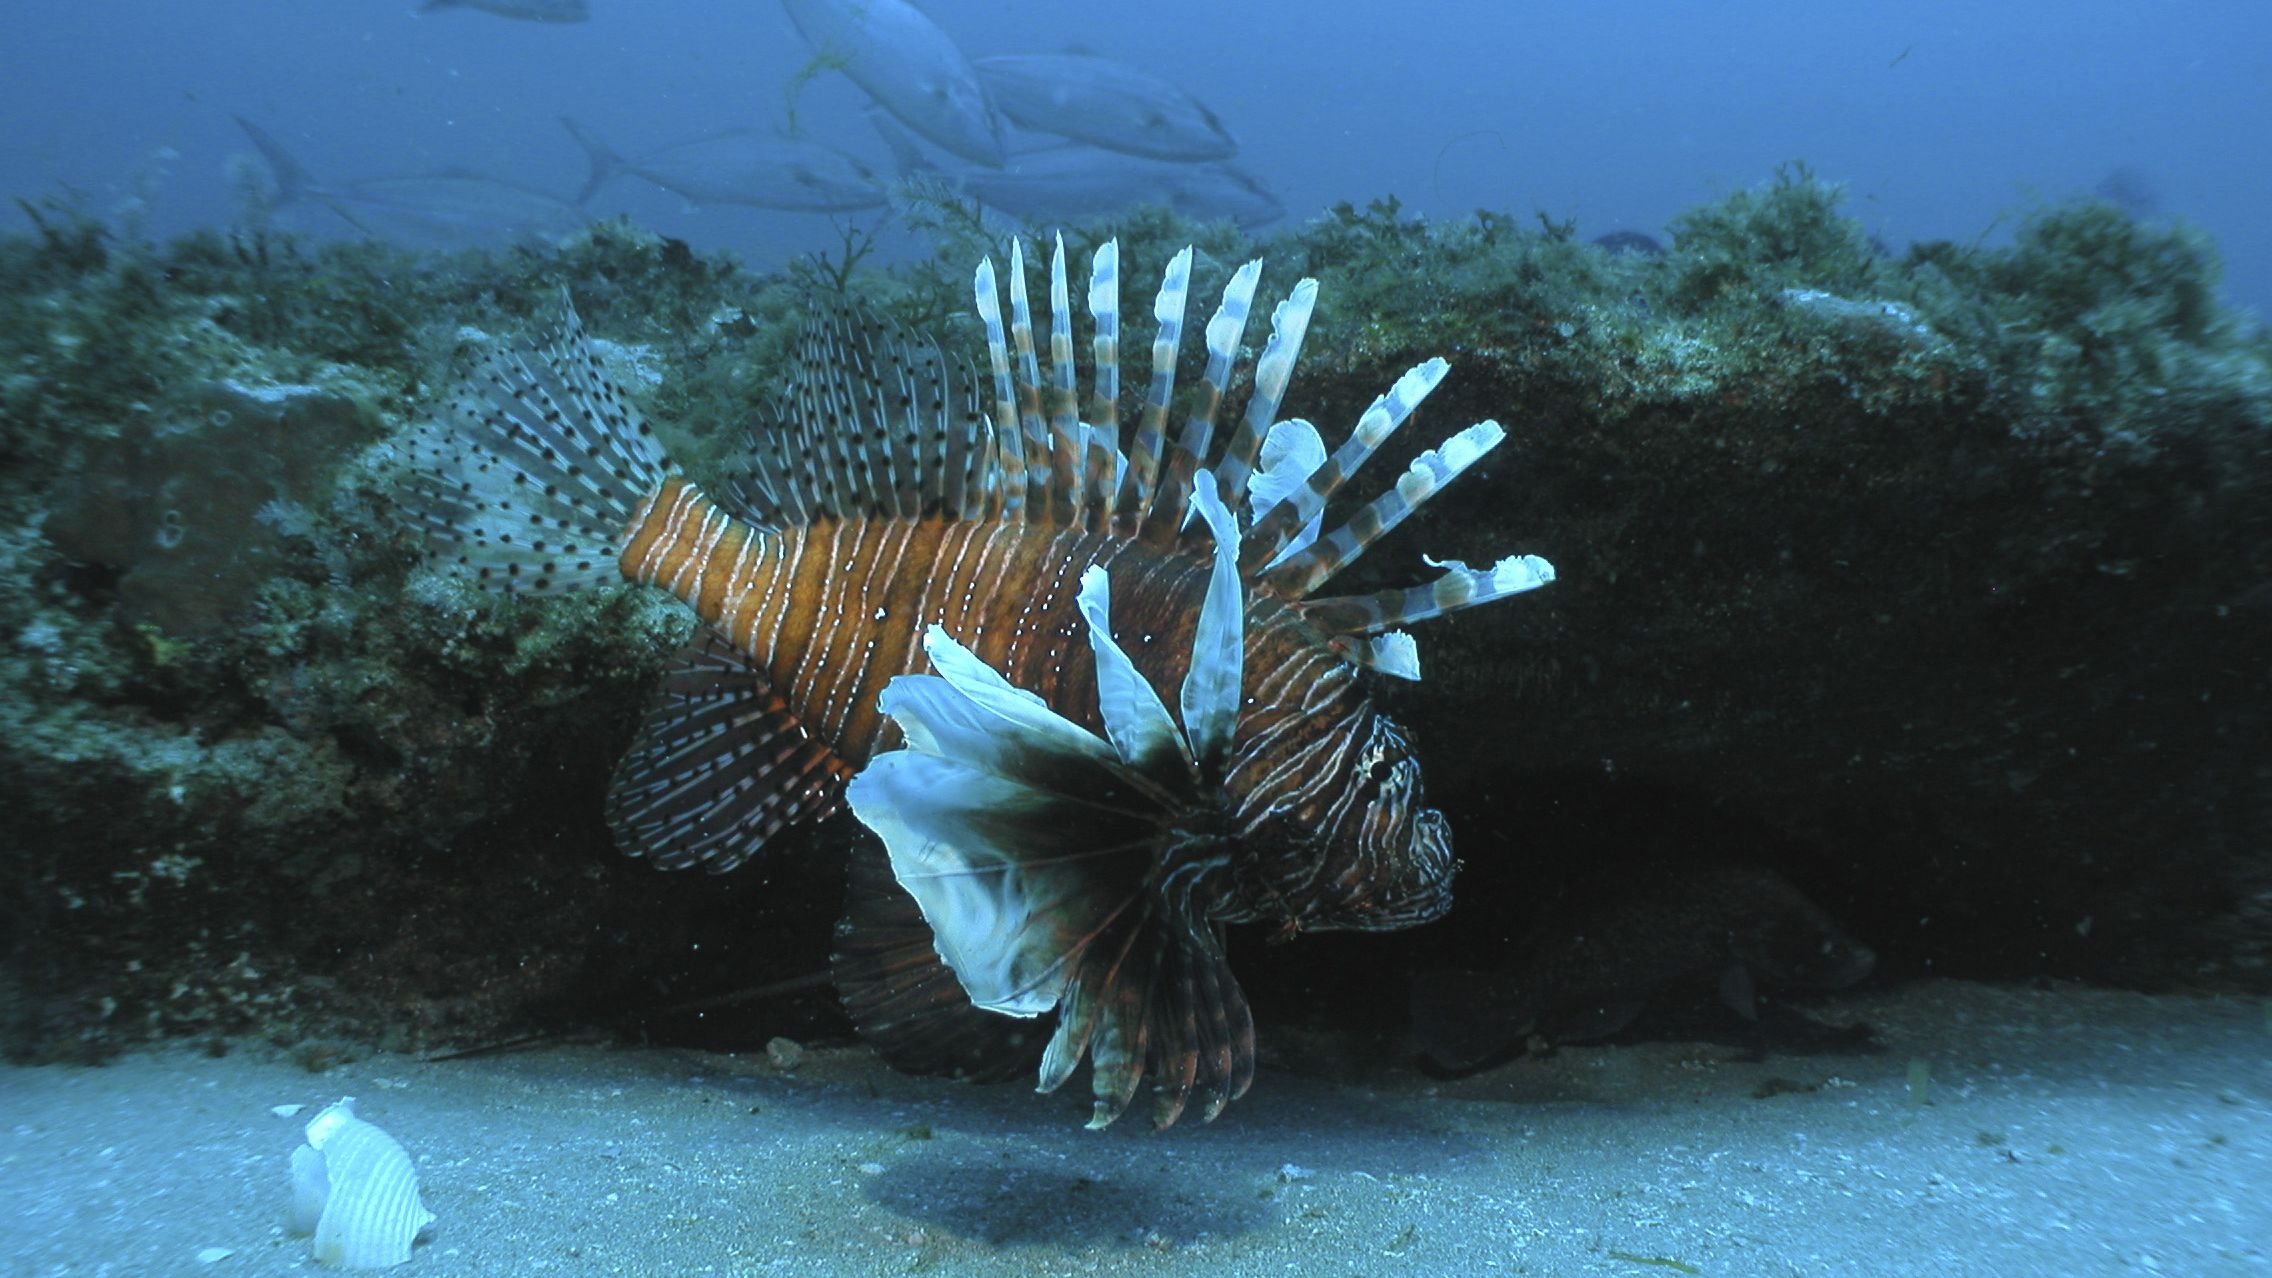 lionfish invasive species disruptive innovation ecosystem competition predator extinction monopoly In this July 2006 file image released by NOAA Undersea Research Center, a lionfish swims at a depth of about 130 feet, roughly 55 miles off the coast of North Carolina. Conservationists in St. Maarten are warning islanders not to eat lionfish after tests found a naturally occurring toxin in the flesh of the candy-striped invasive species that is causing ecological damage across the region, officials said Thursday, Nov. 24, 2011. (AP Photo/Doug Kesling/NOAA Undersea Research Center